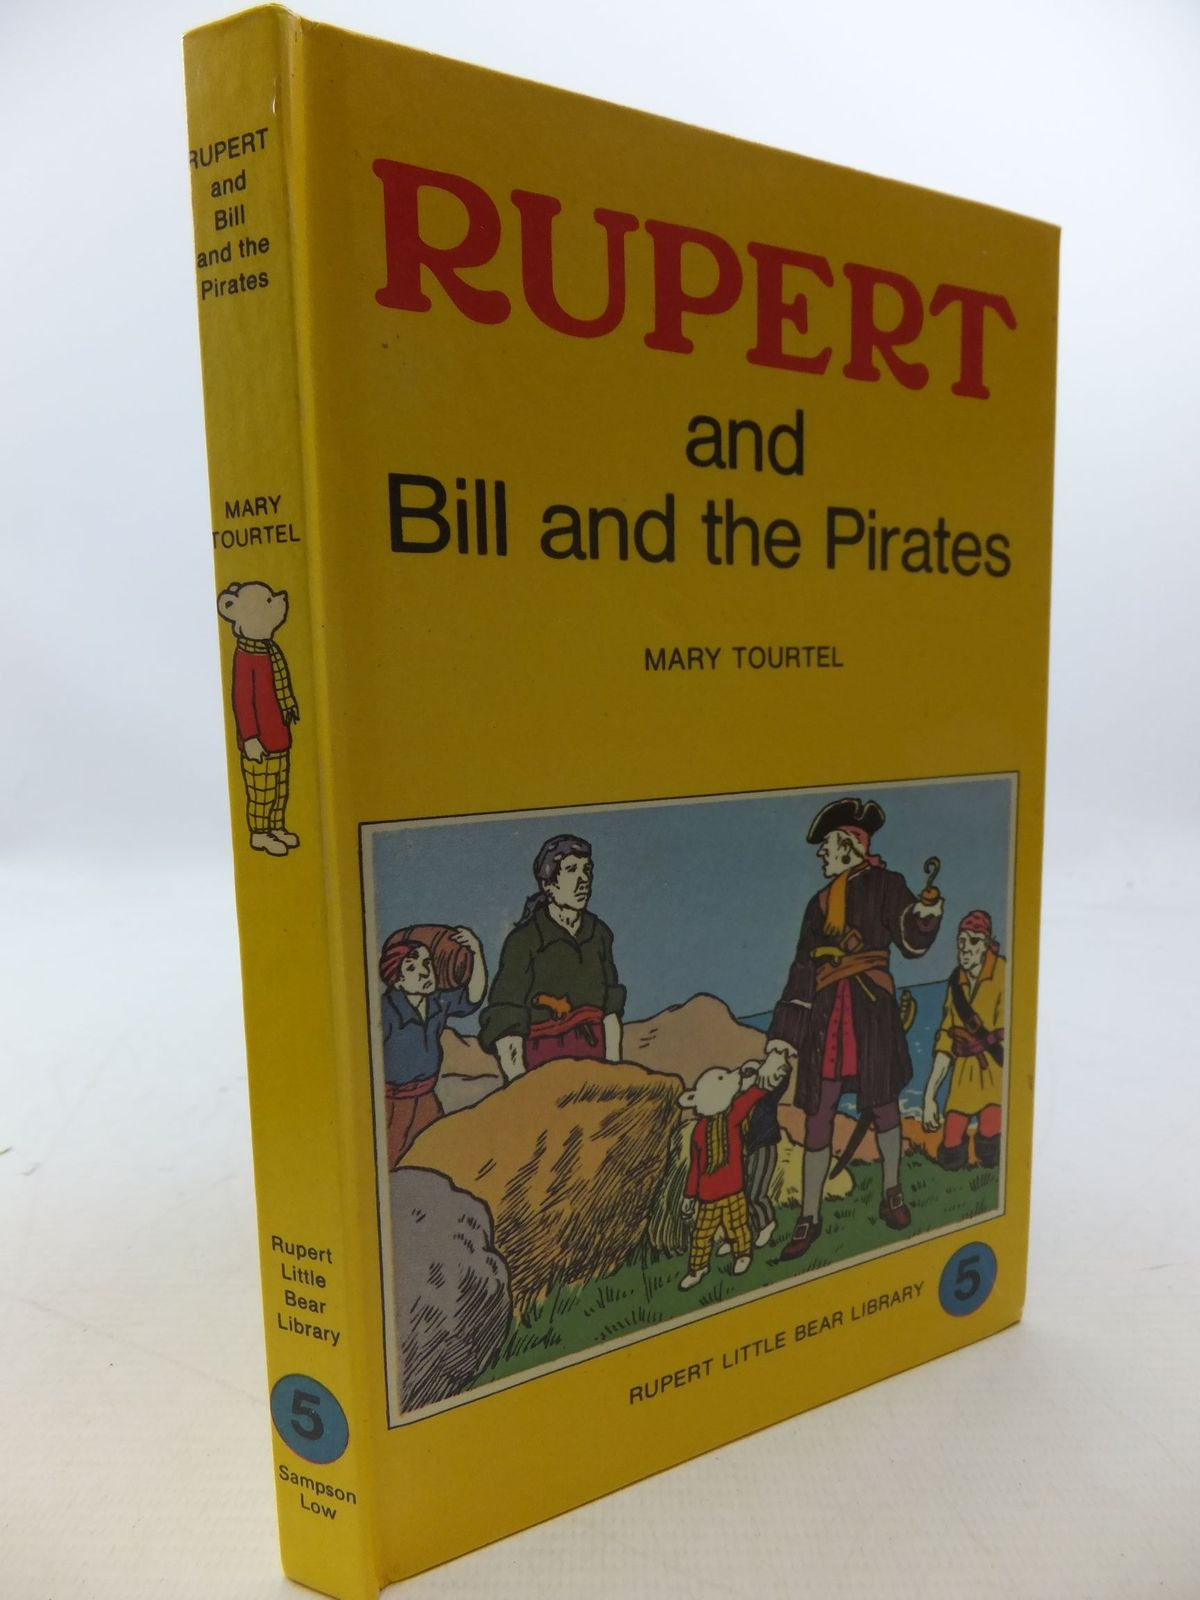 Photo of RUPERT AND BILL AND THE PIRATES - RUPERT LITTLE BEAR LIBRARY No. 5 (WOOLWORTH) written by Tourtel, Mary published by Sampson Low, Marston & Co. Ltd. (STOCK CODE: 2112762)  for sale by Stella & Rose's Books